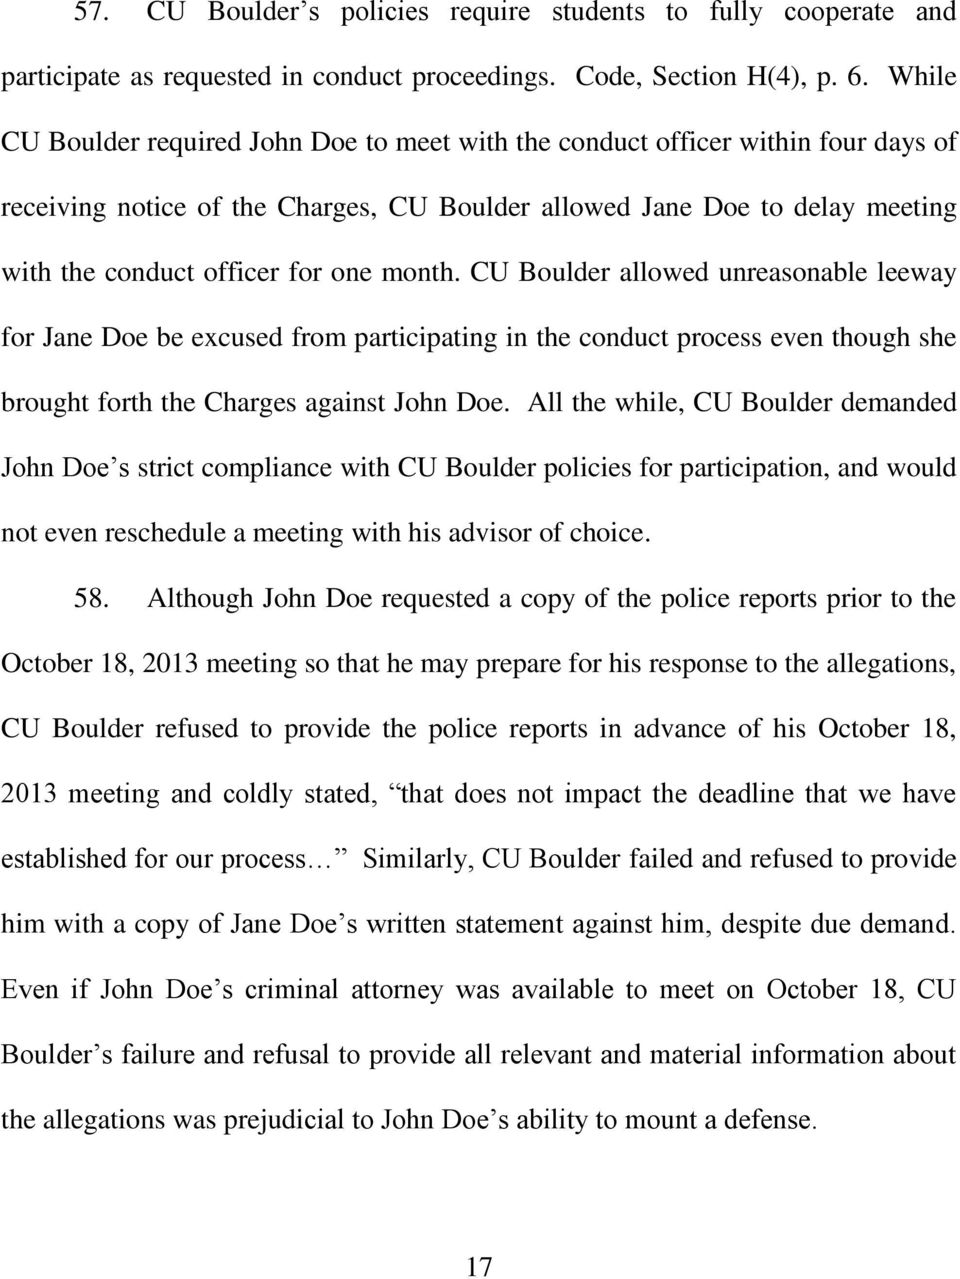 month. CU Boulder allowed unreasonable leeway for Jane Doe be excused from participating in the conduct process even though she brought forth the Charges against John Doe.